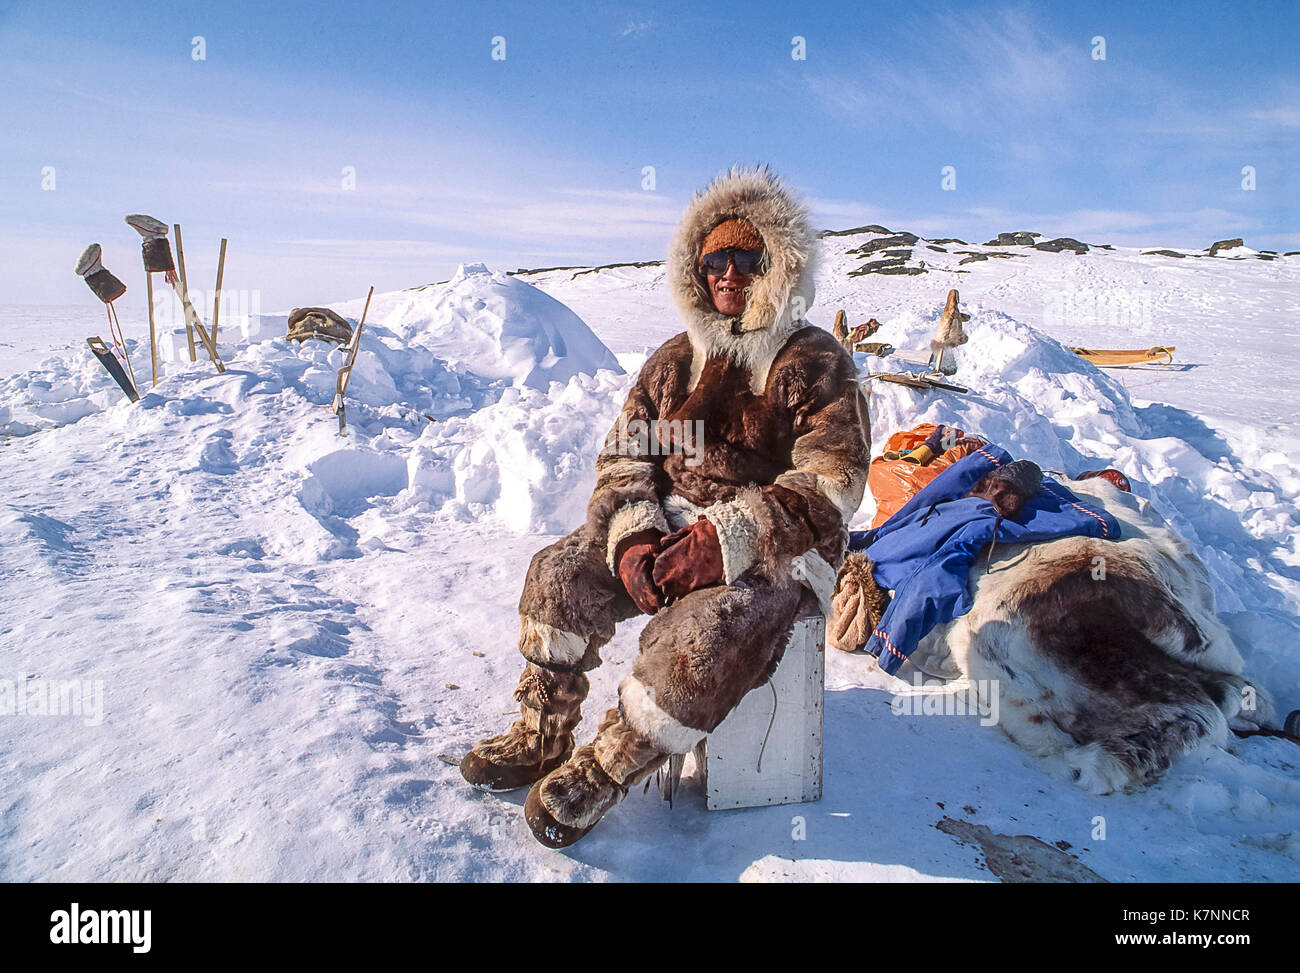 Inuit elder, 60s, dressed in traditional caribou skin clothing, rests outside his igloo, seen behind him with tools and boots set out to air out. - Stock Image